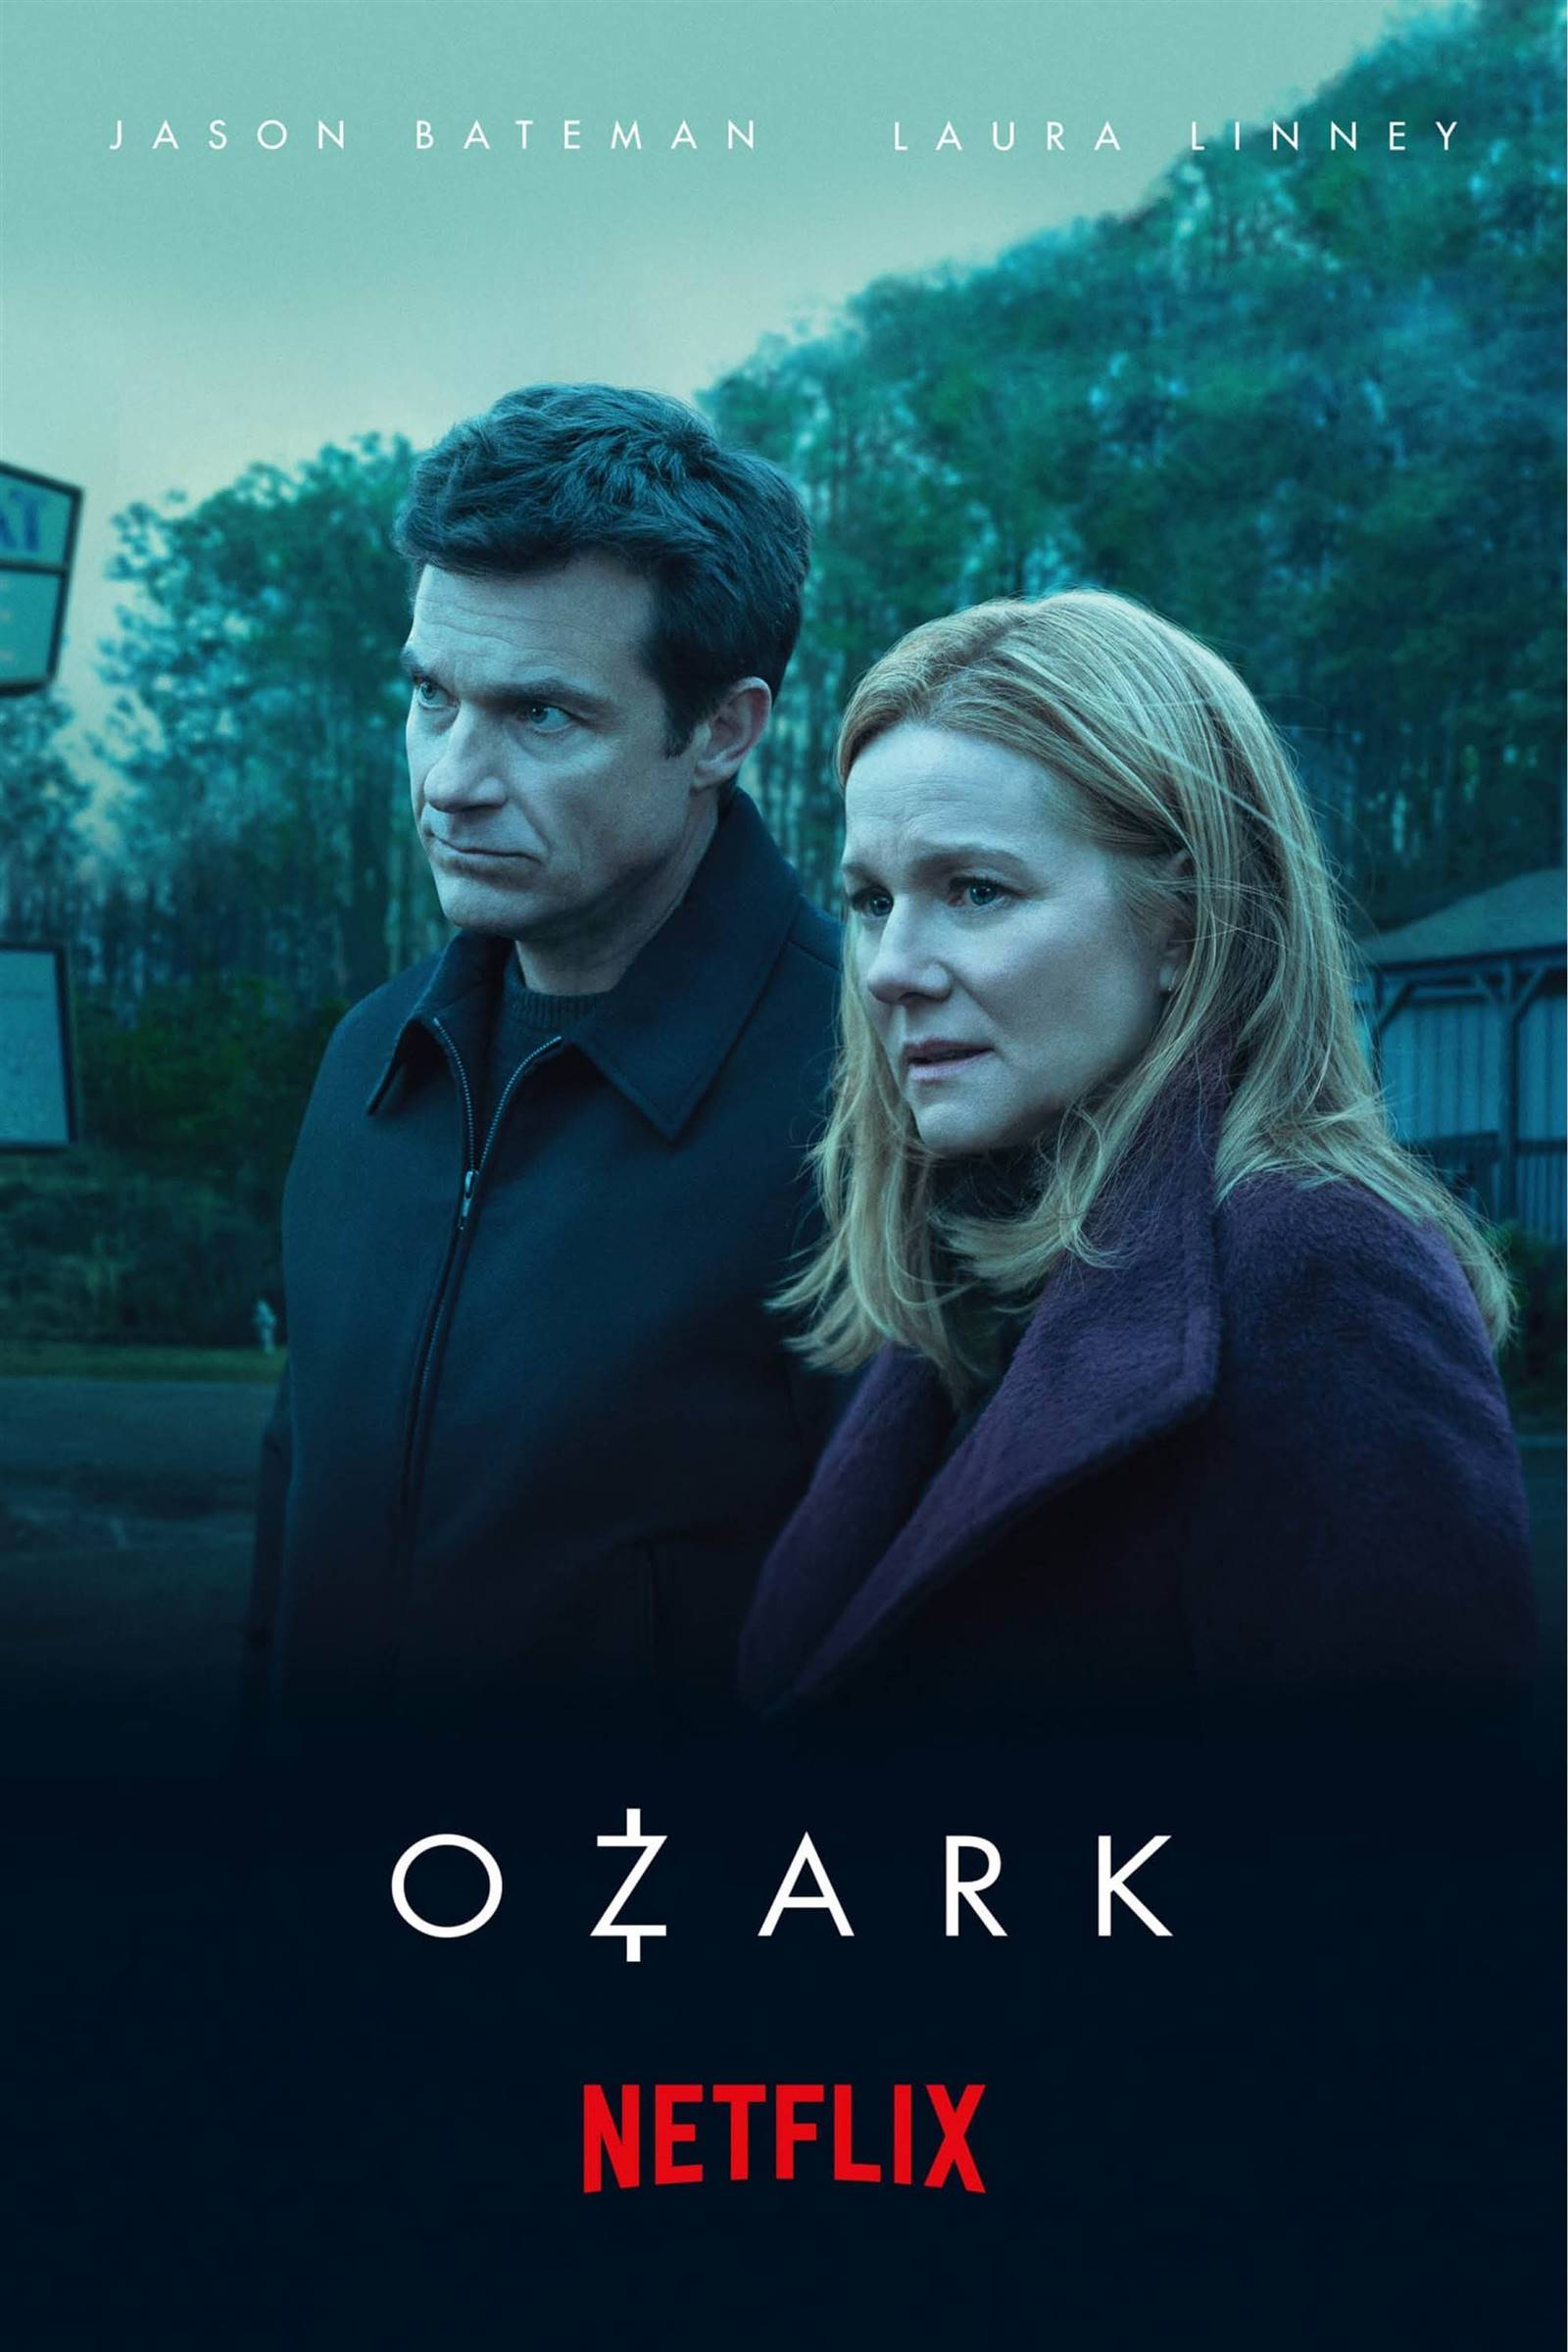 ozark mejores series netflix hbo movistar amazon5